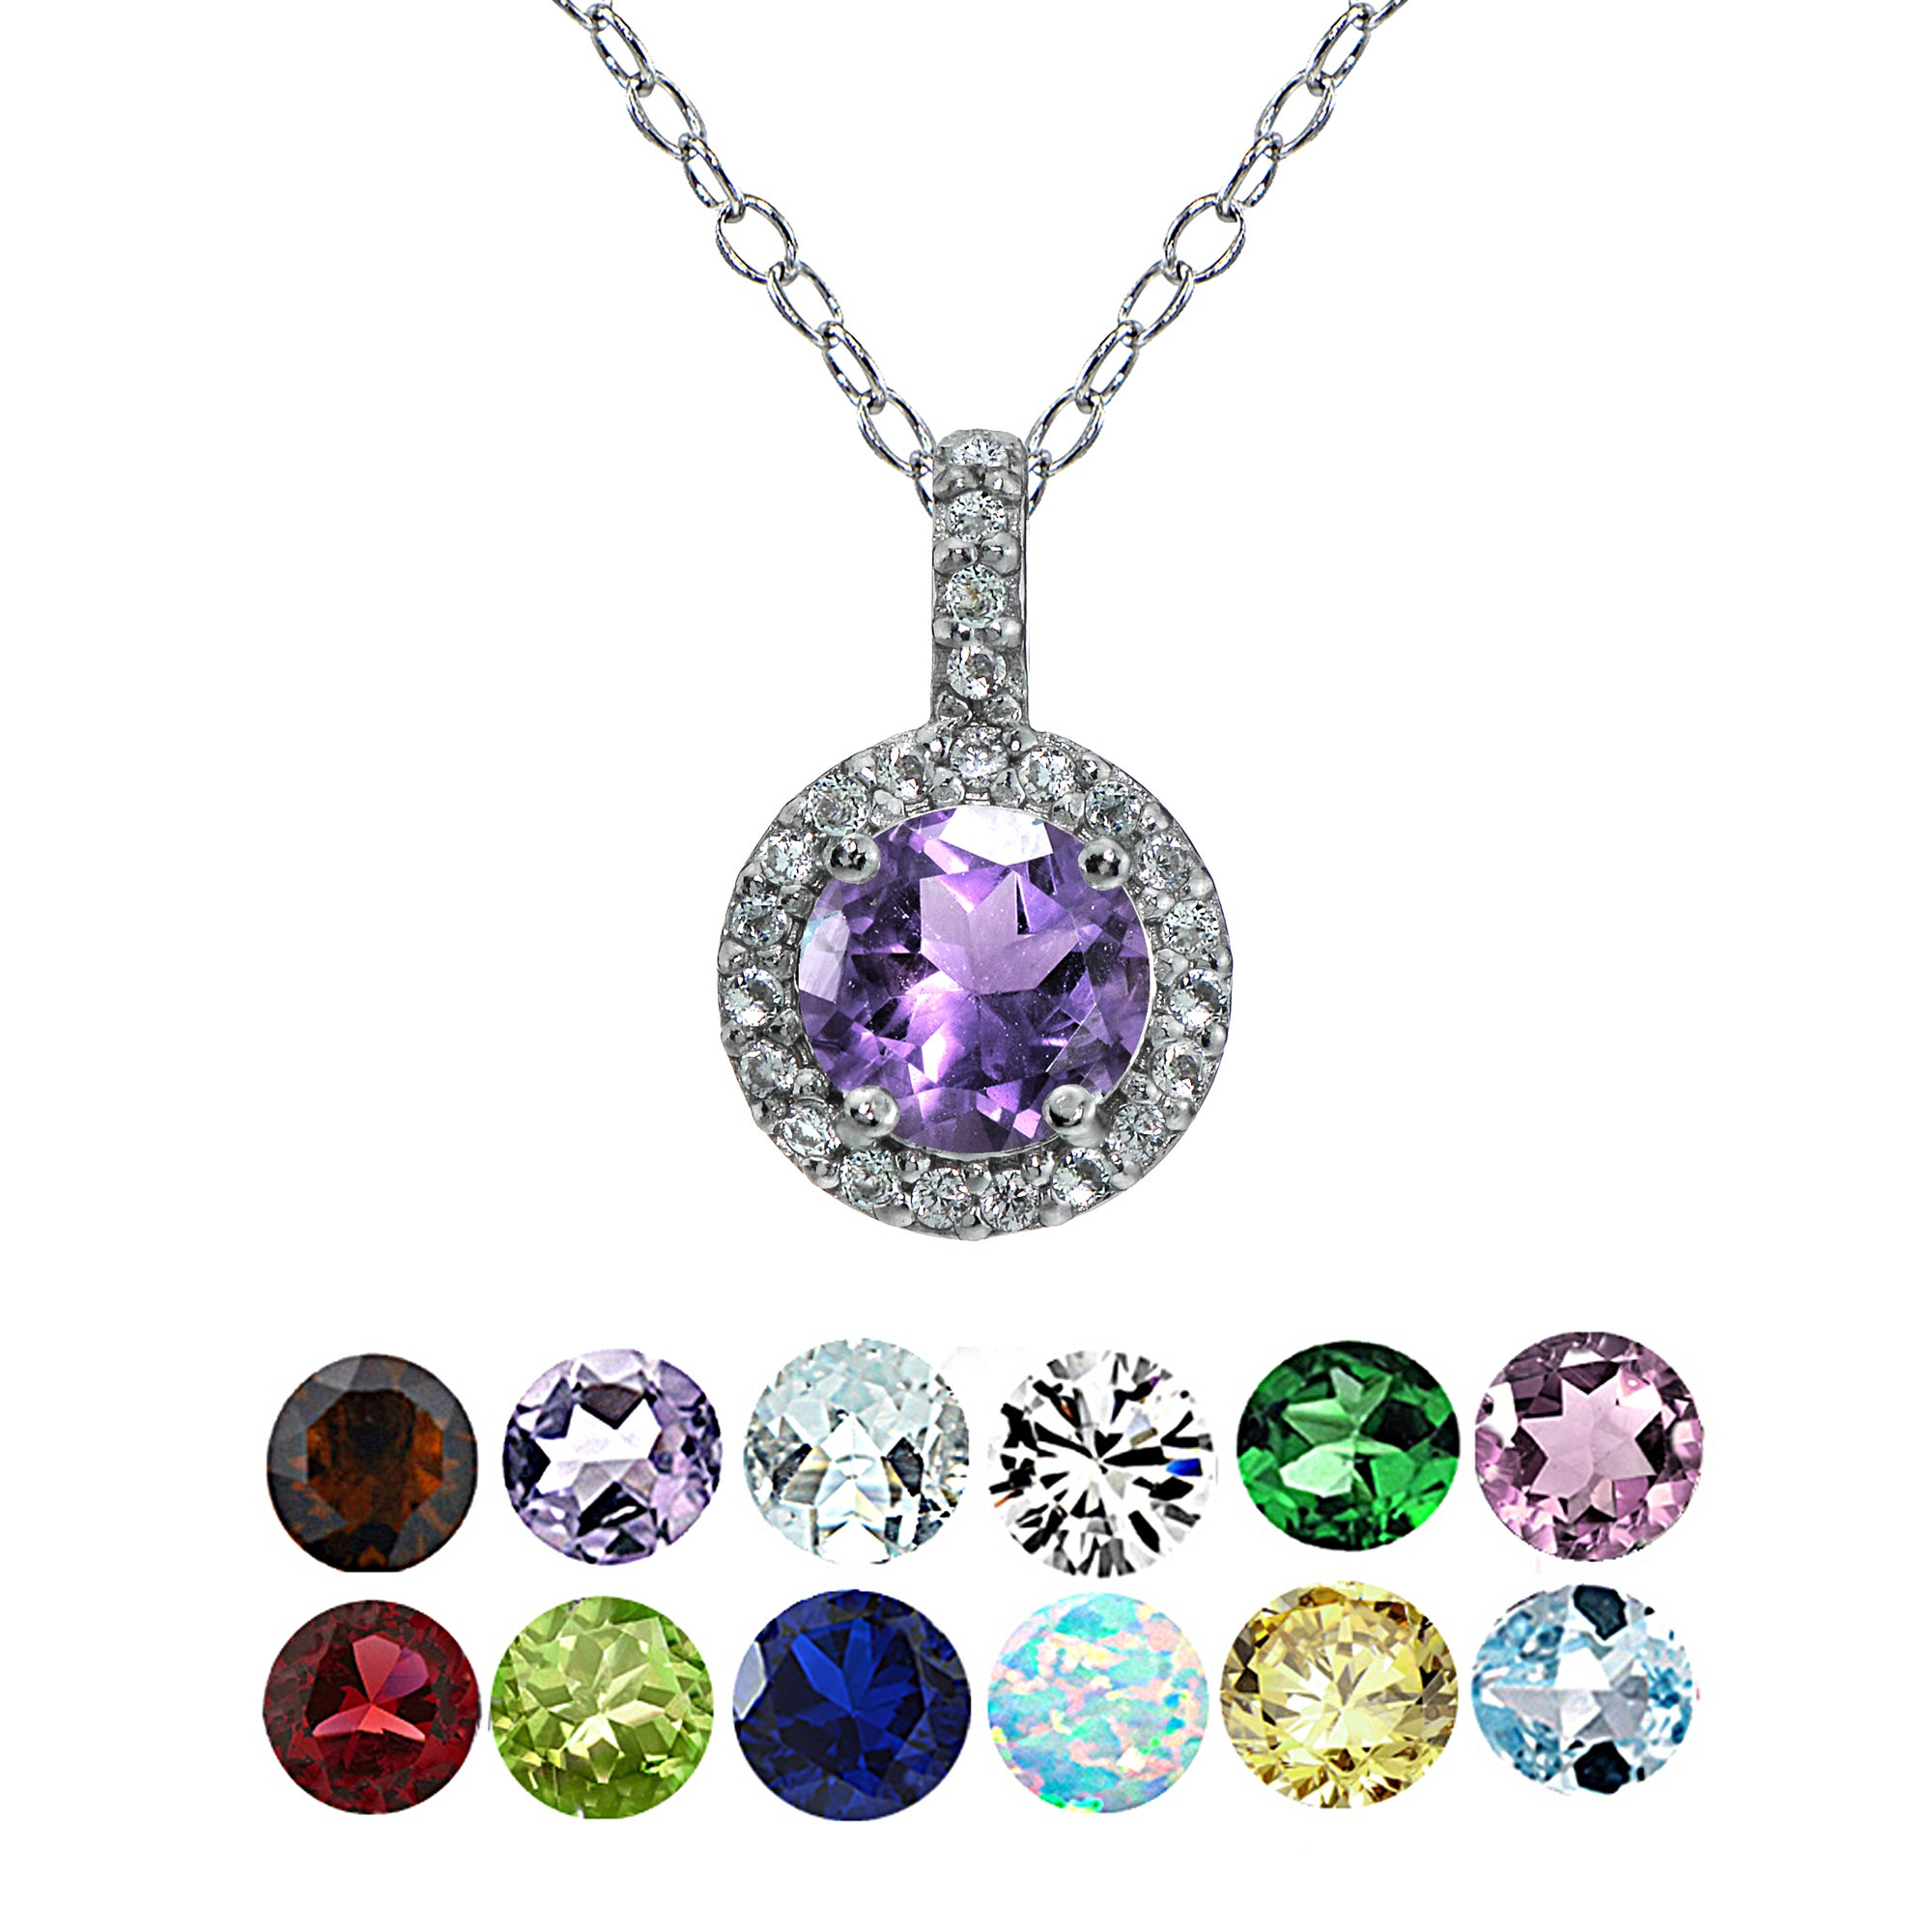 ruth alex necklace birthstone design jewelry teardrop pendant med barzel product alexandrite